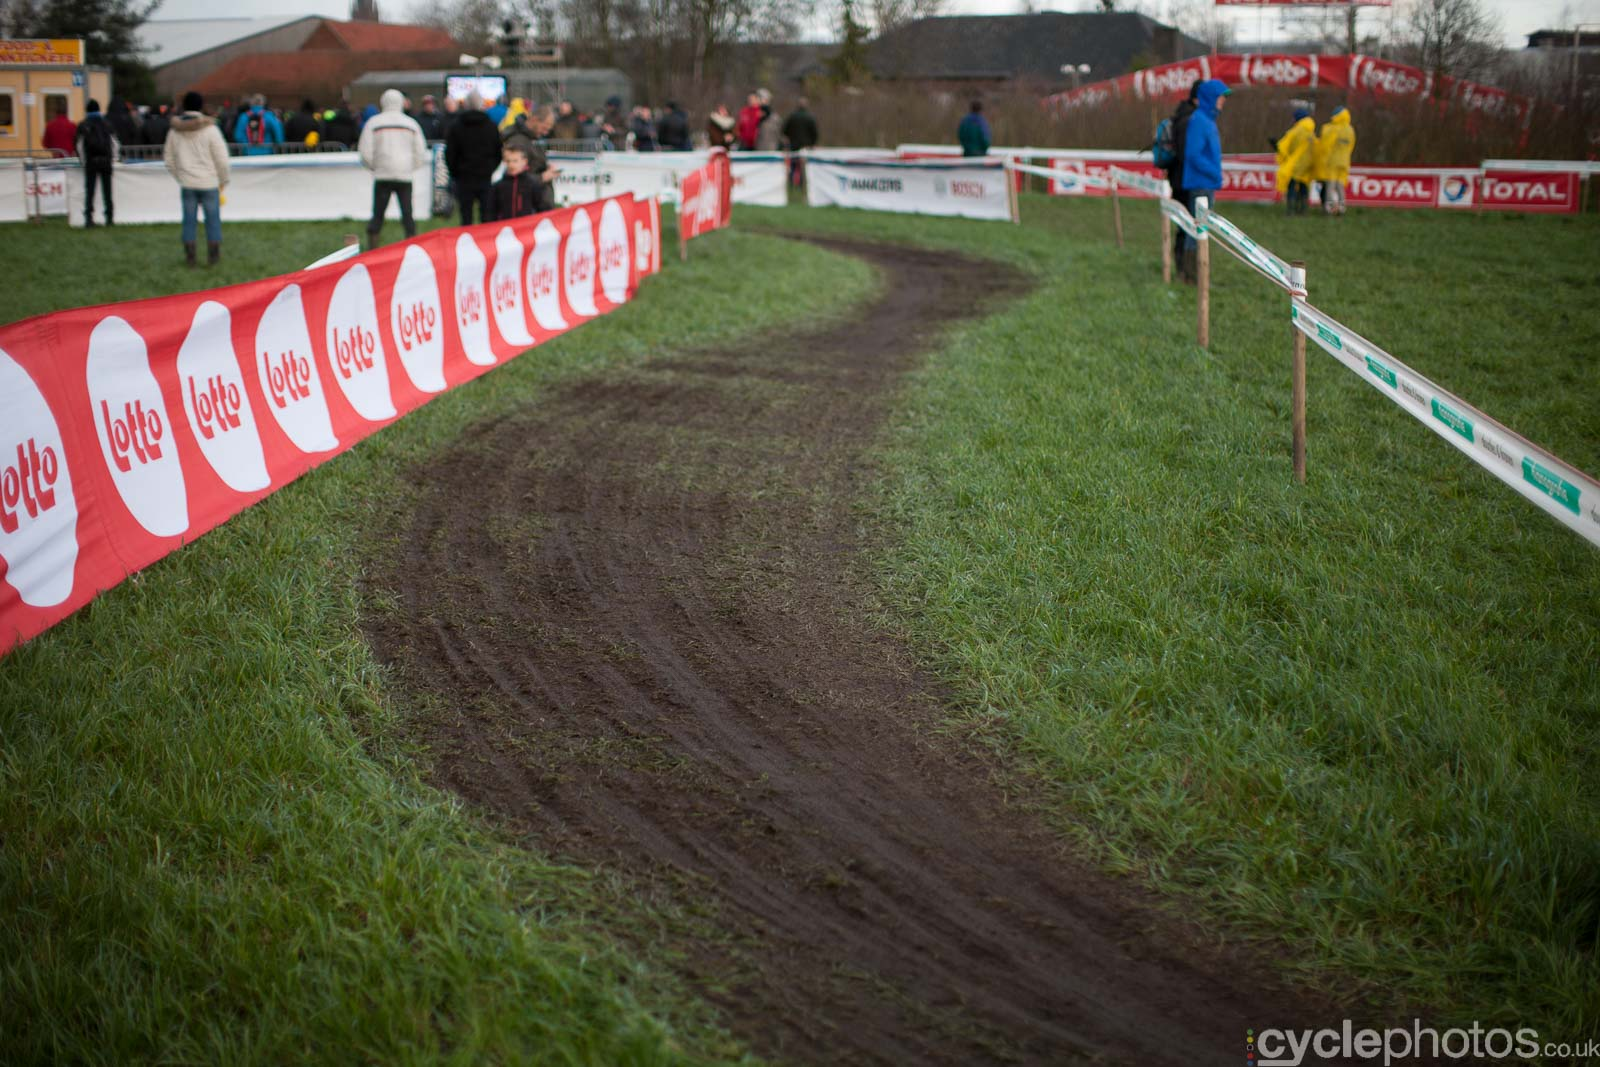 2016-cyclephotos-cyclocross-hoogstraten-152552-line